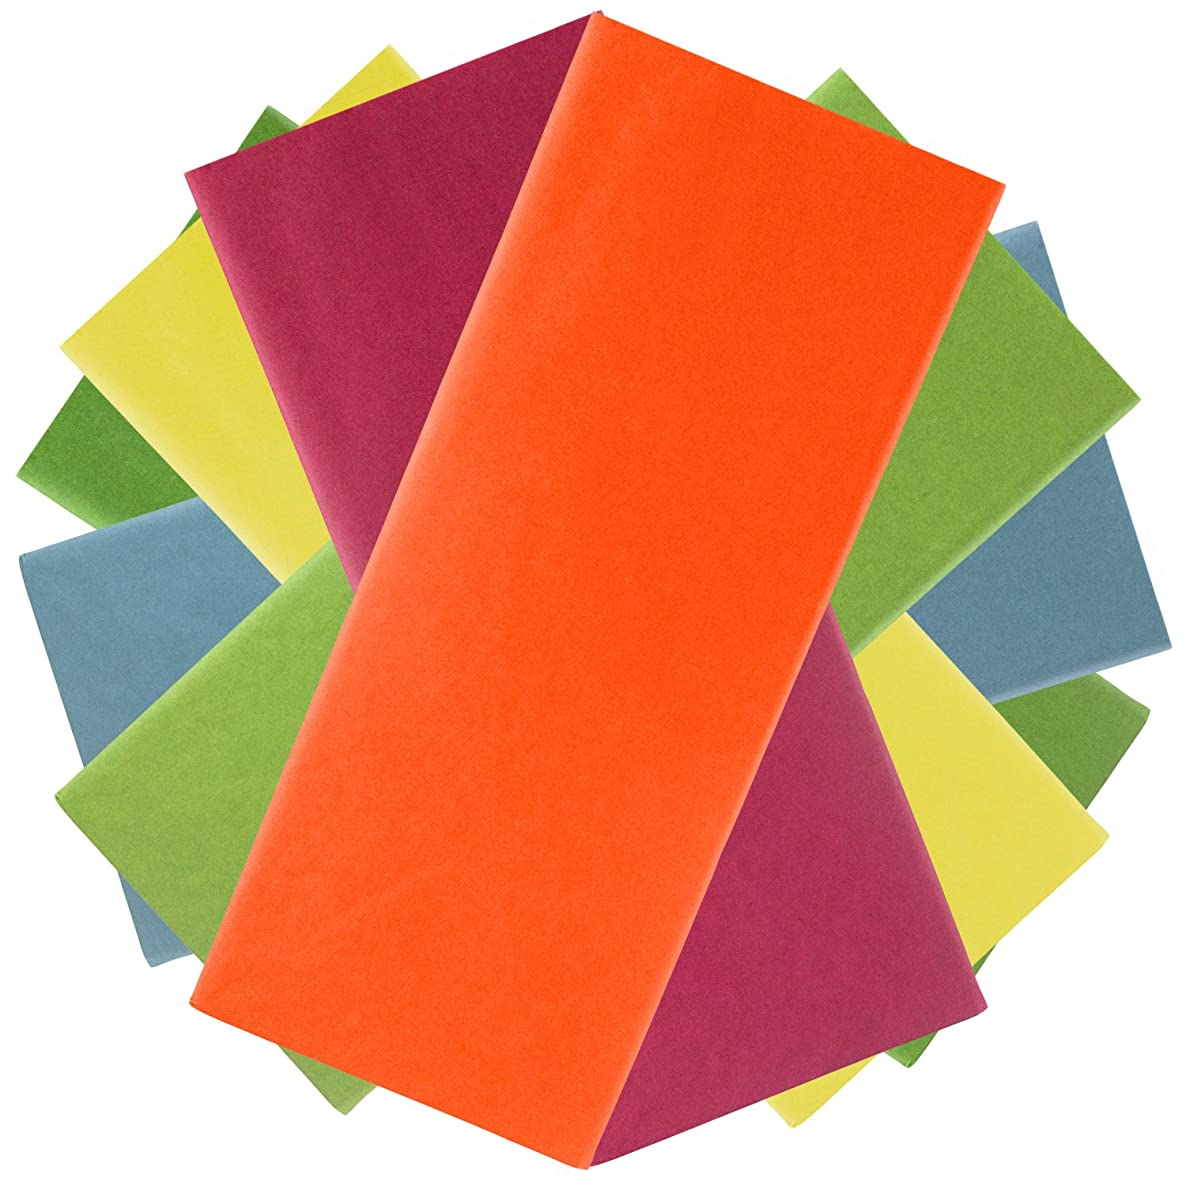 JAM PAPER Assorted Gift Wrapping Tissue Paper Set - Bright Vibrant Colors - 6 Packs/Set (48 Sheets Total)